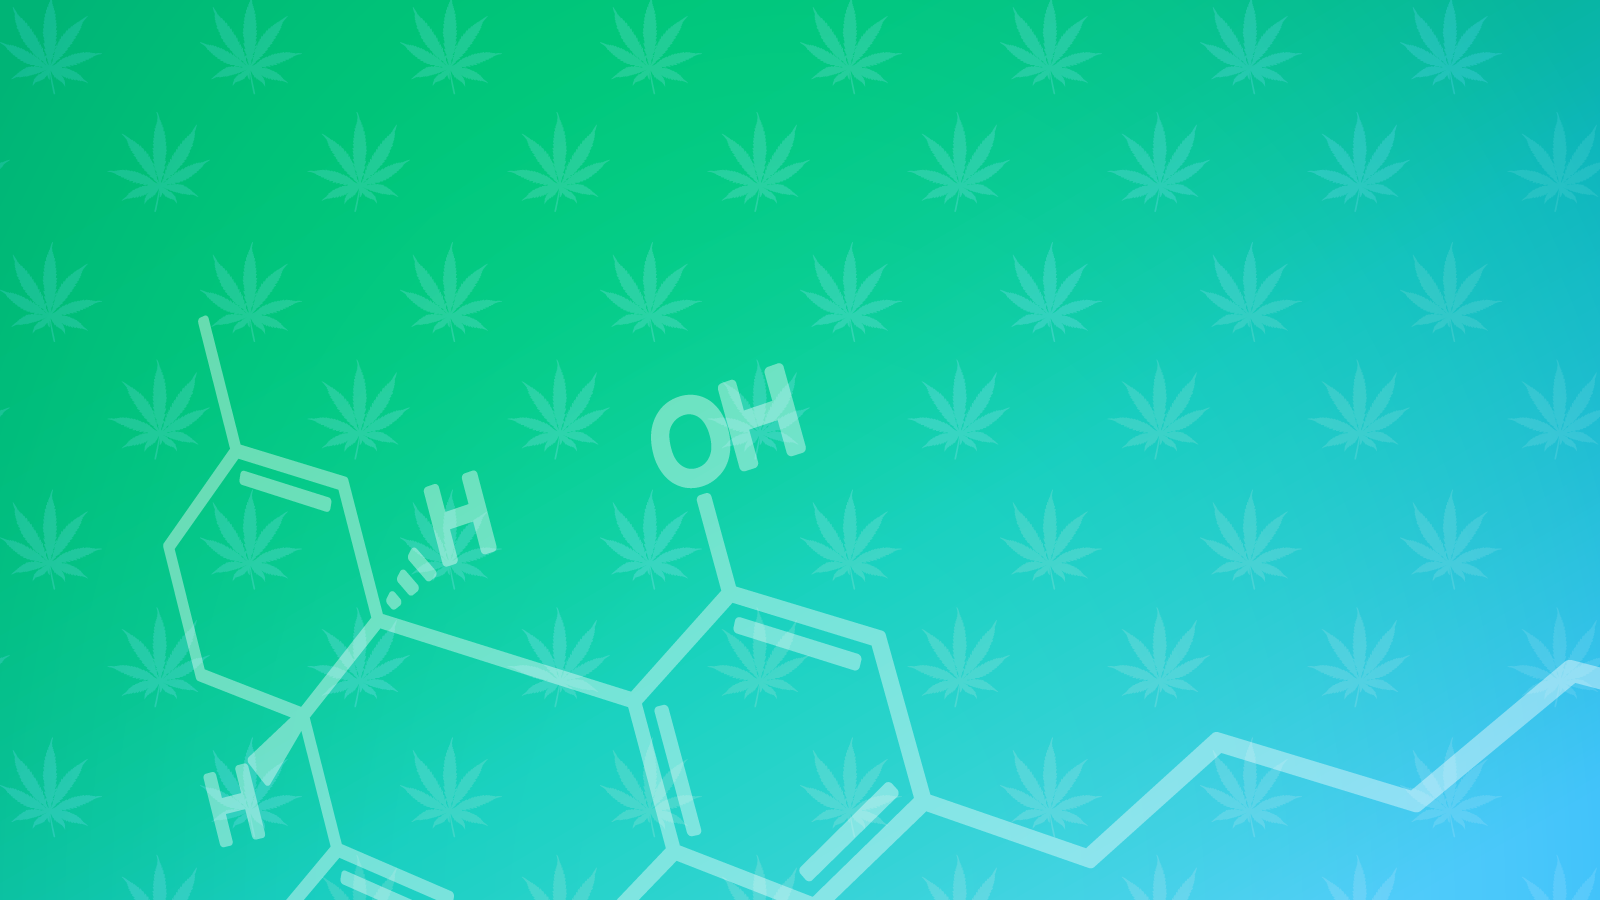 Israel Could Grow Into A Global Cannabis Startup Superpower | TechCrunch